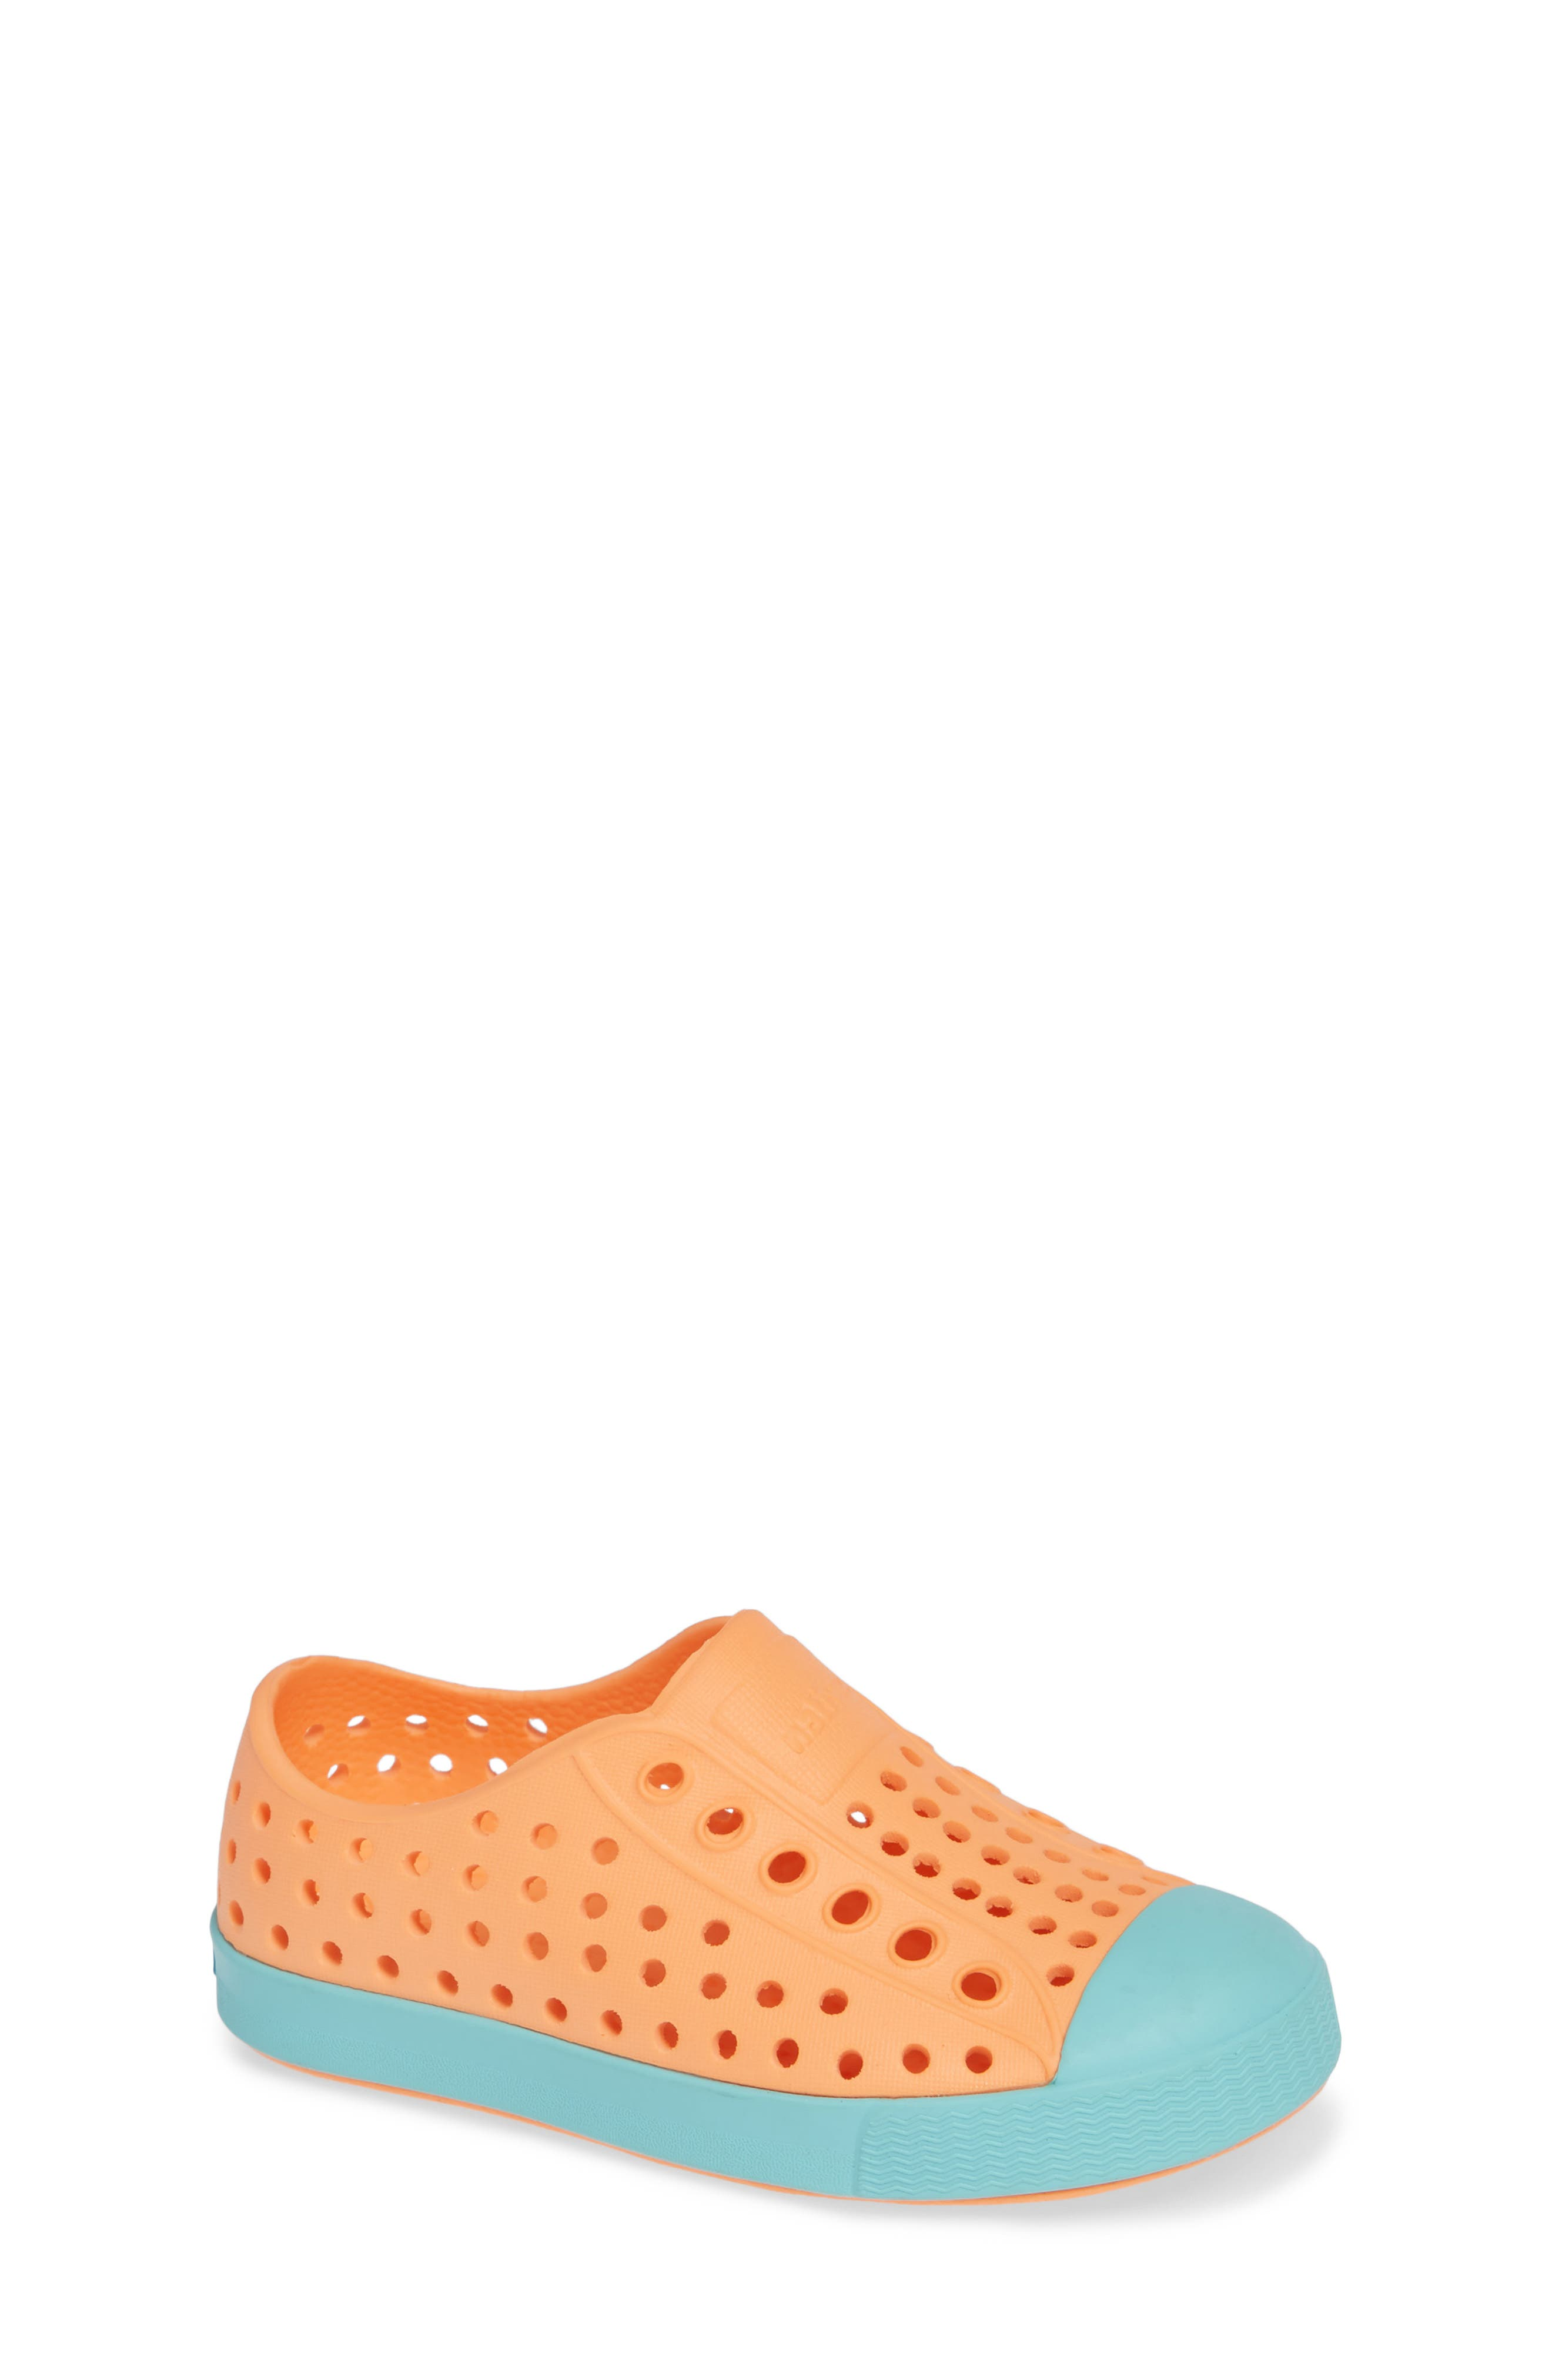 'Jefferson' Water Friendly Slip-On Sneaker,                         Main,                         color, LASER ORANGE/ SHERBET BLUE